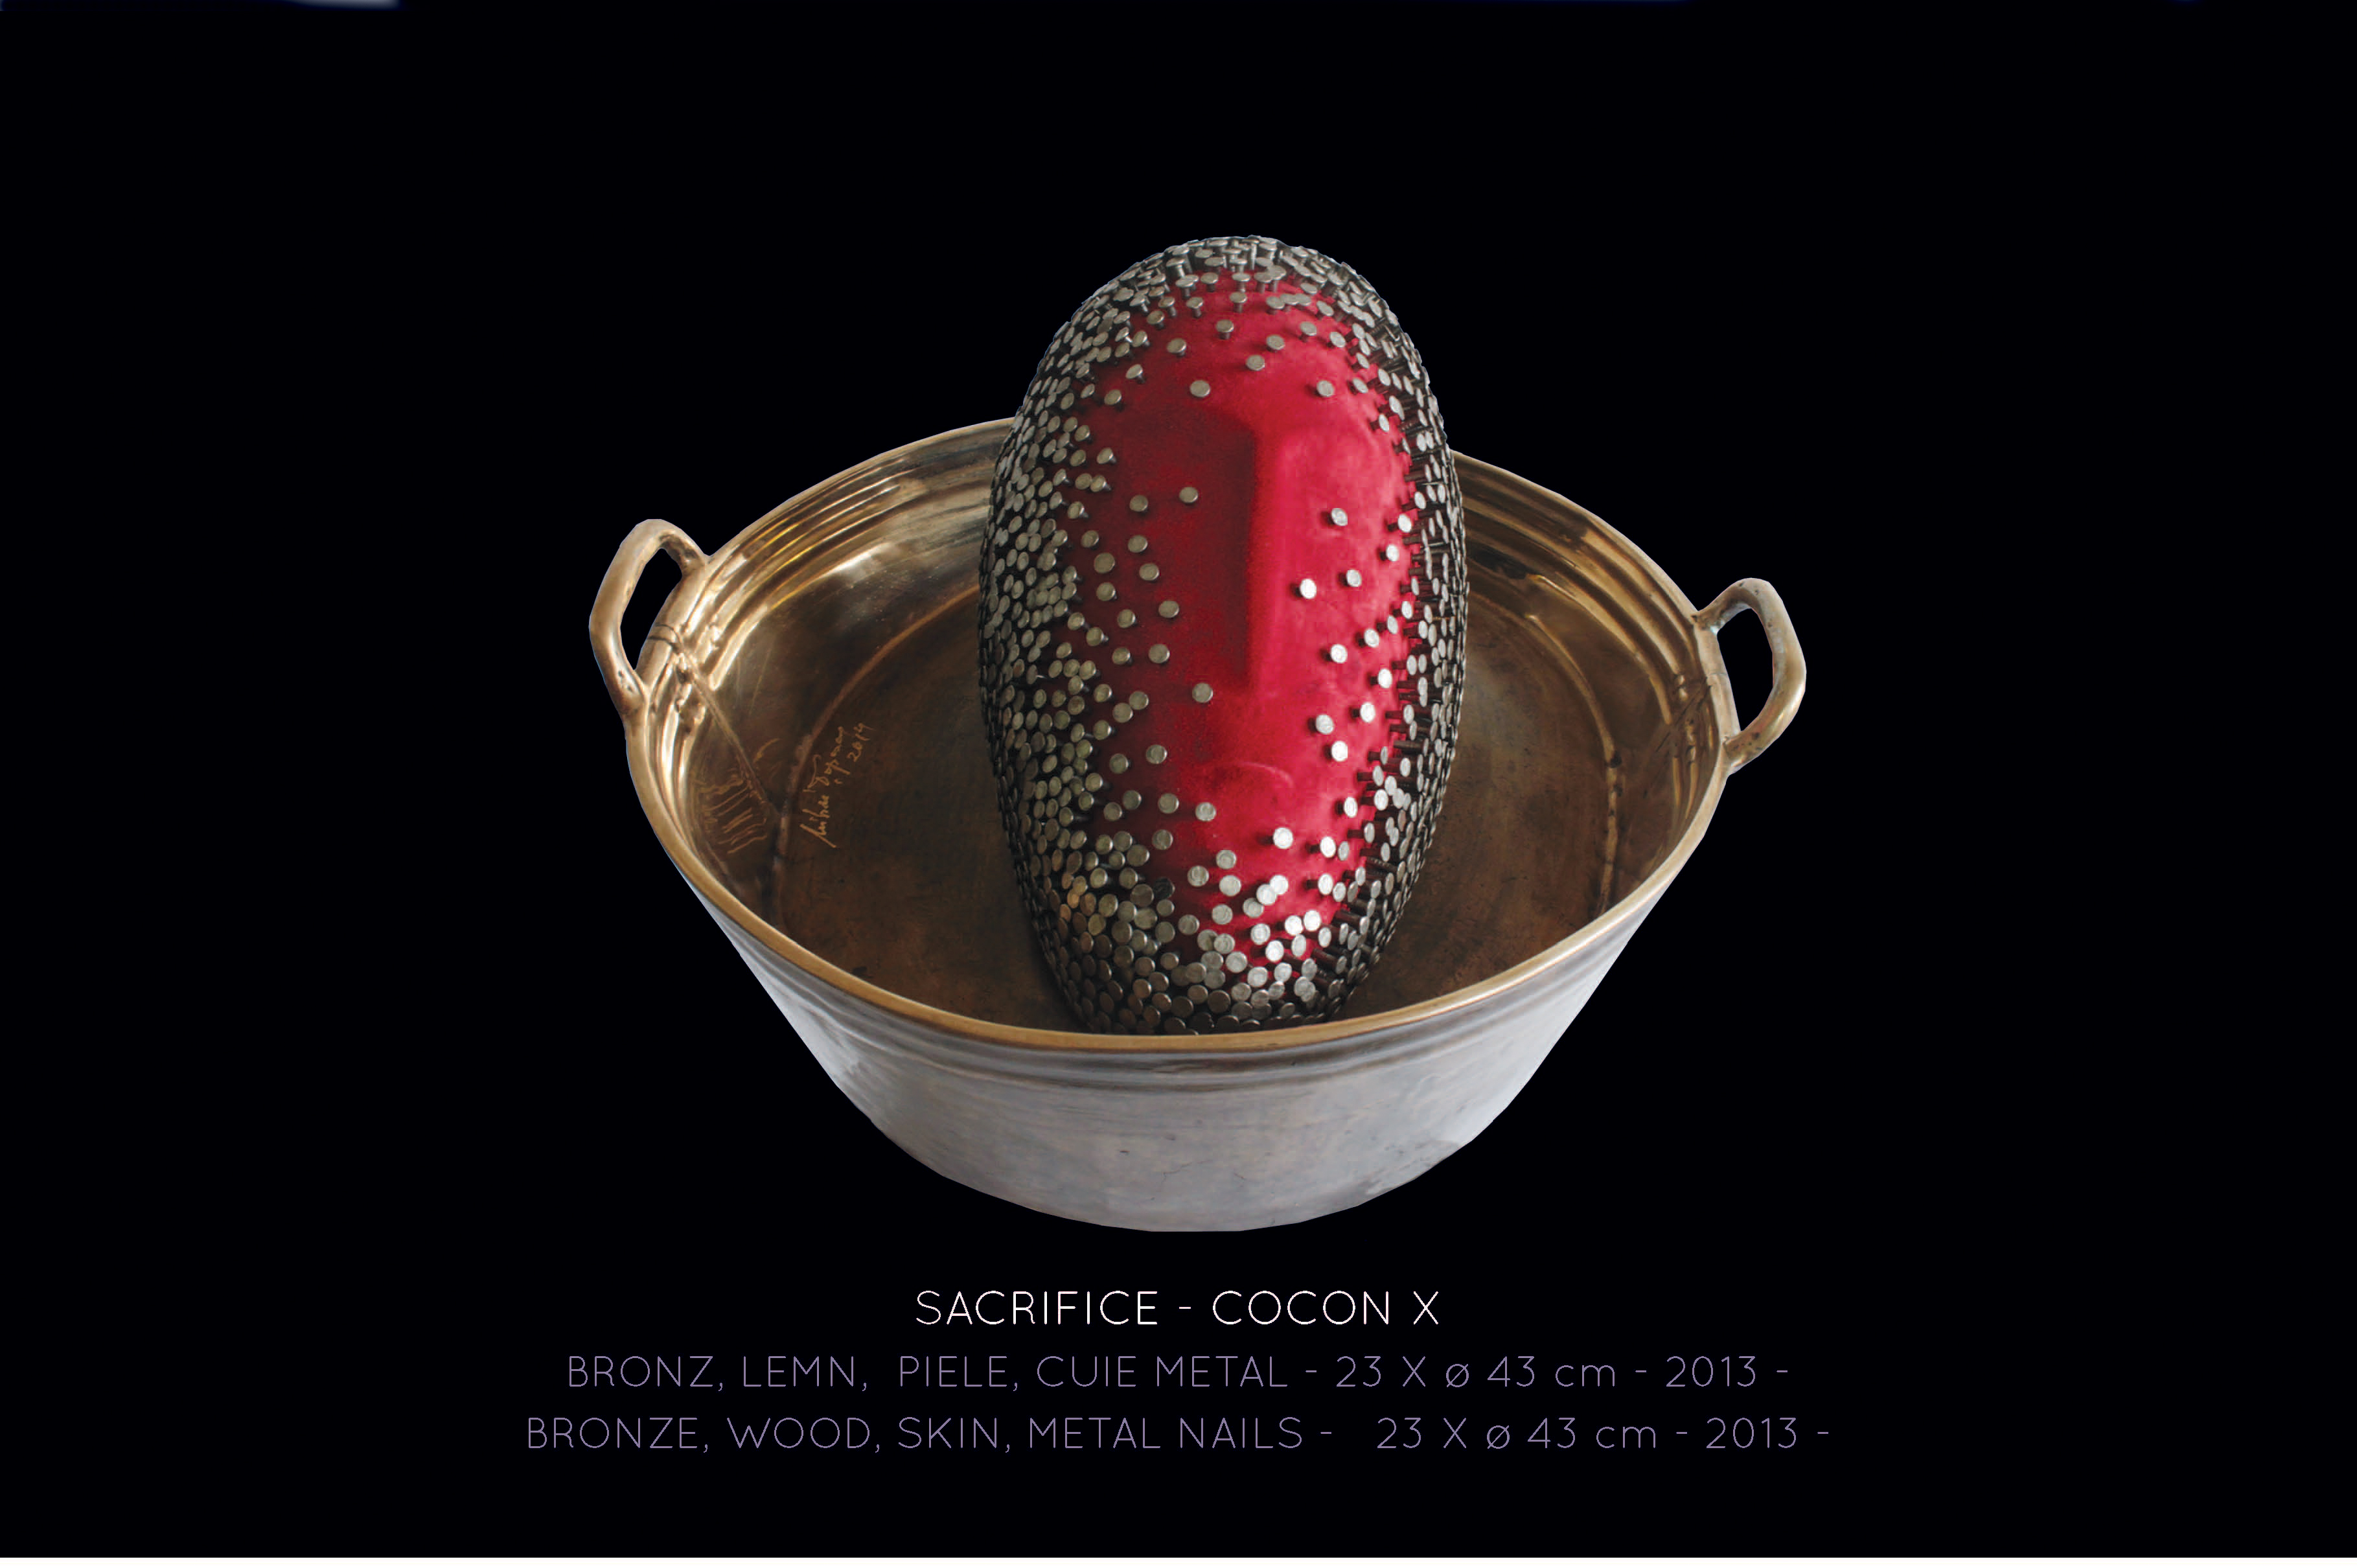 10 The cycle of sacrifice; COCON X